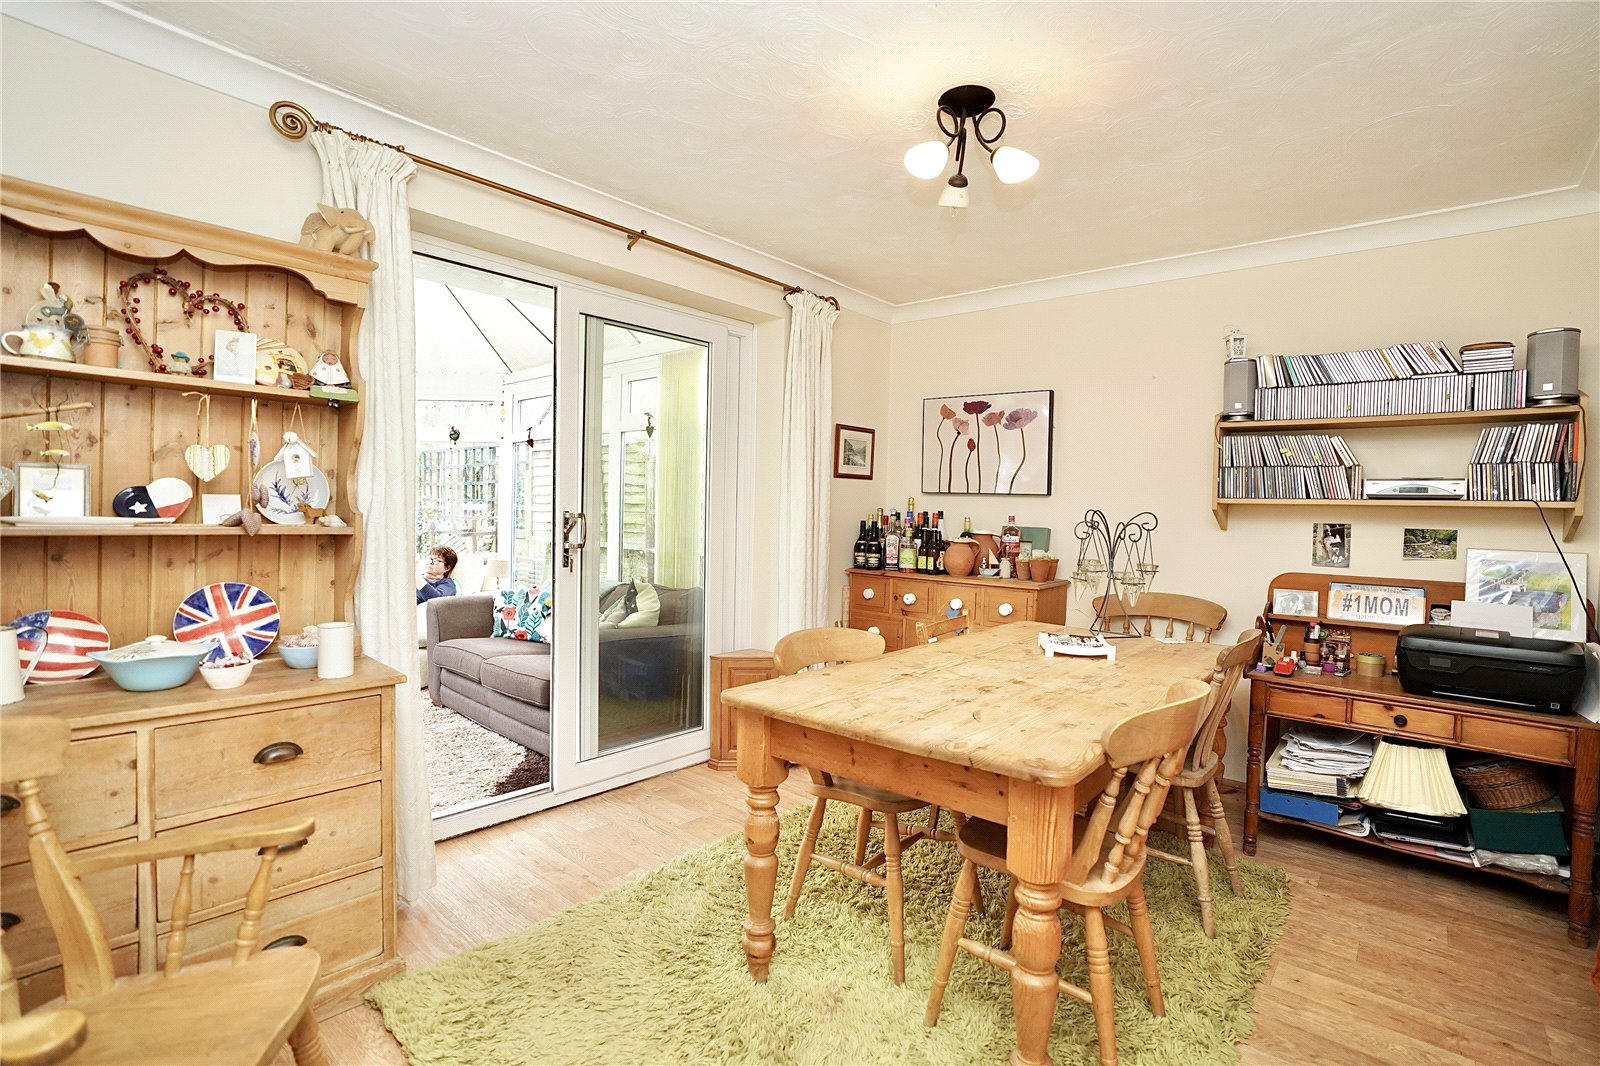 3 bed house for sale in Hemingford Grey, PE28 9BS  - Property Image 6